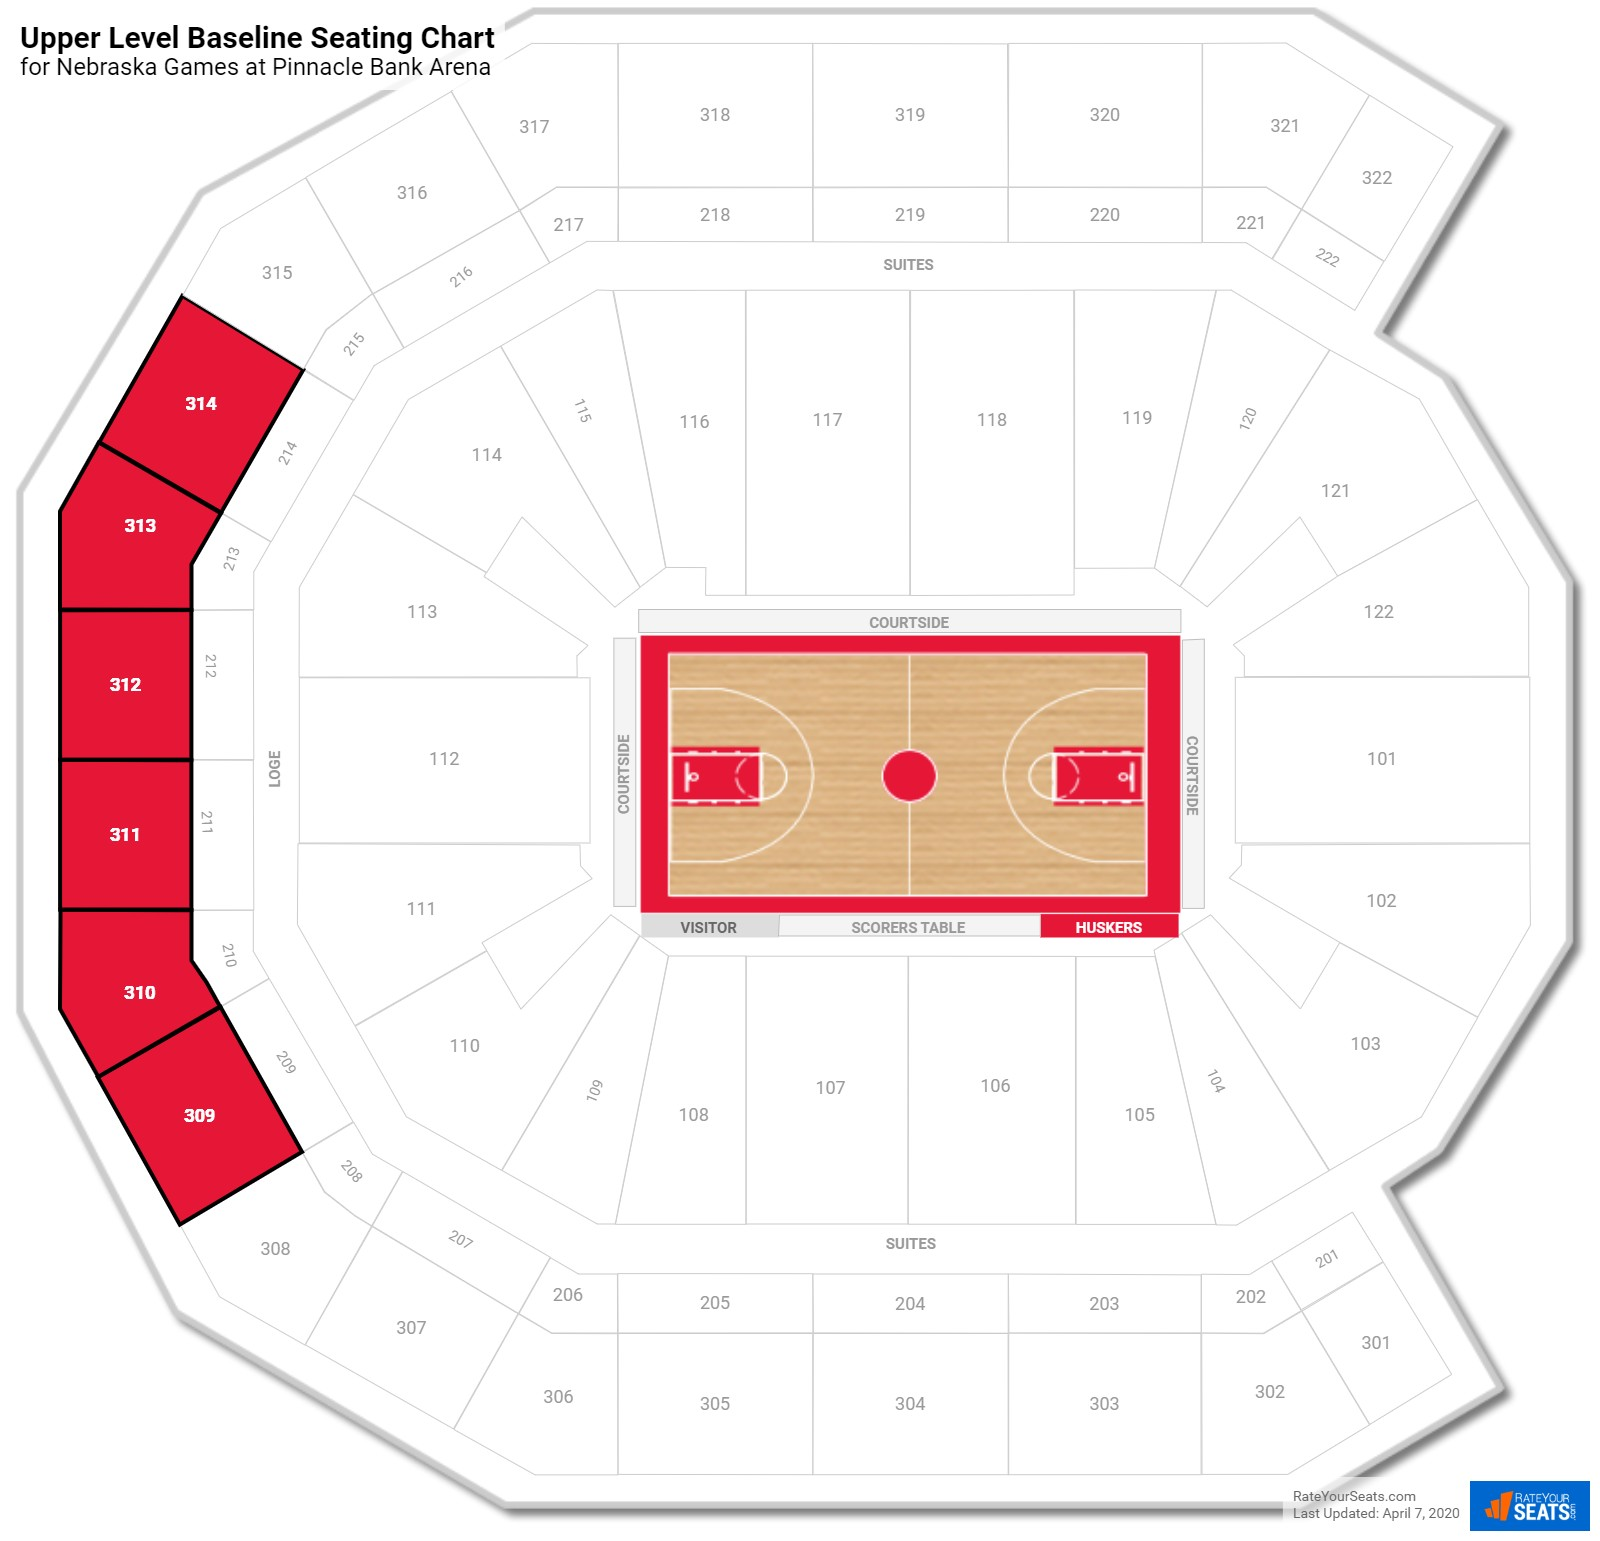 Pinnacle Bank Arena Upper Level Baseline seating chart